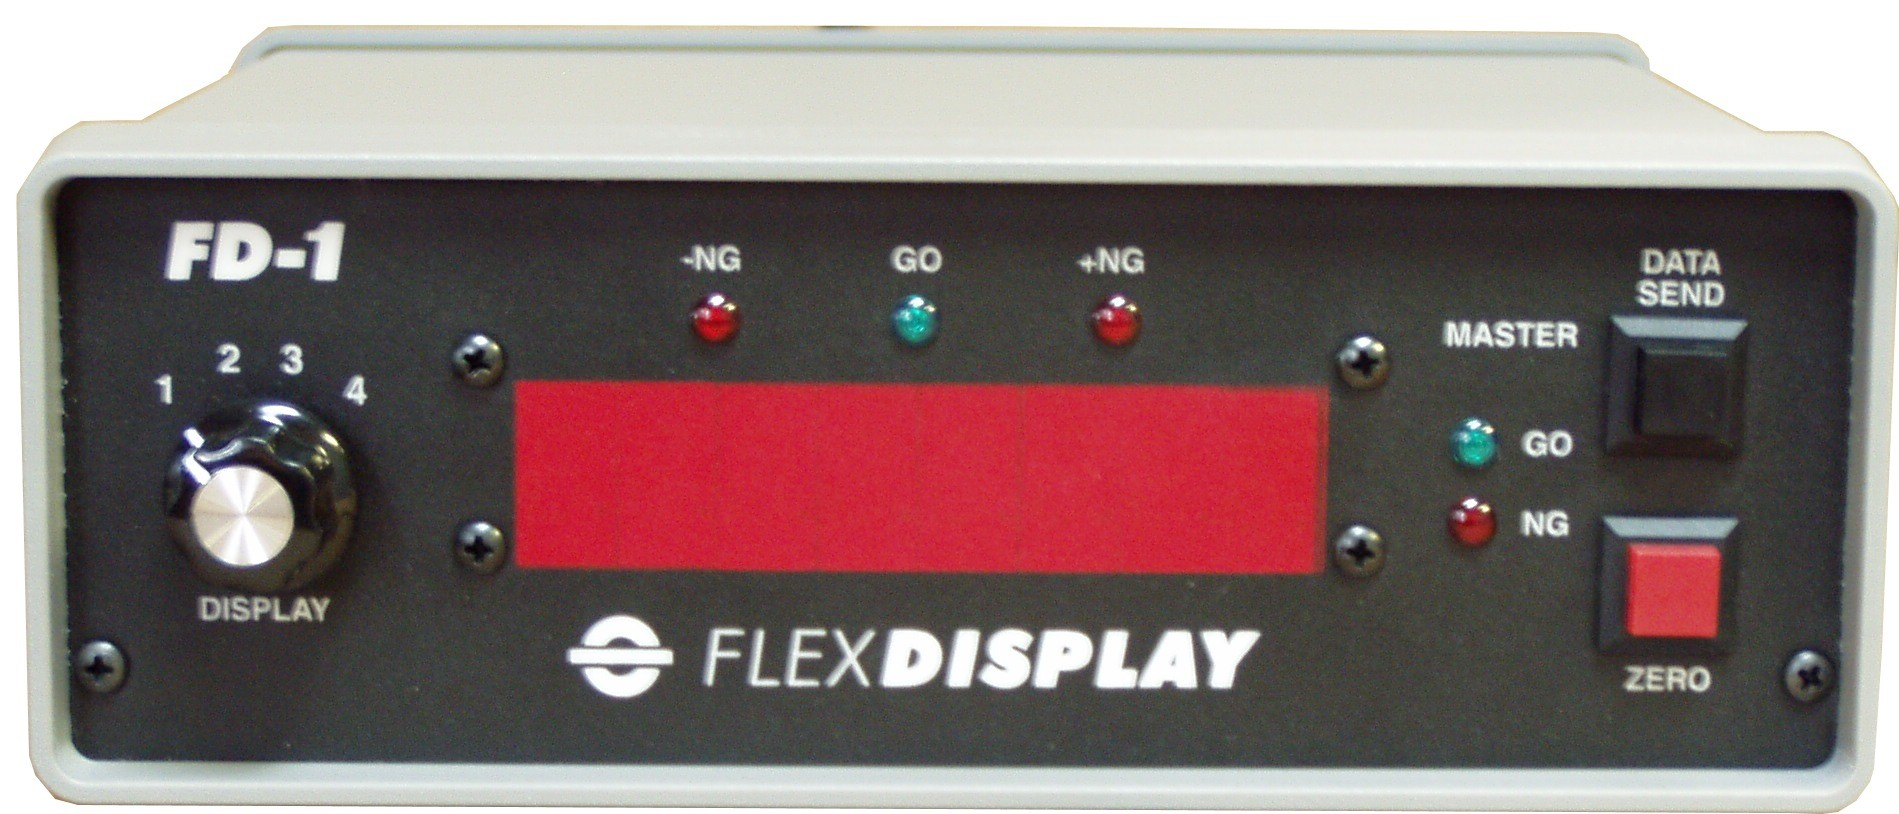 FlexDisplay Gage Interface & Remote Display FD-1 (Front)